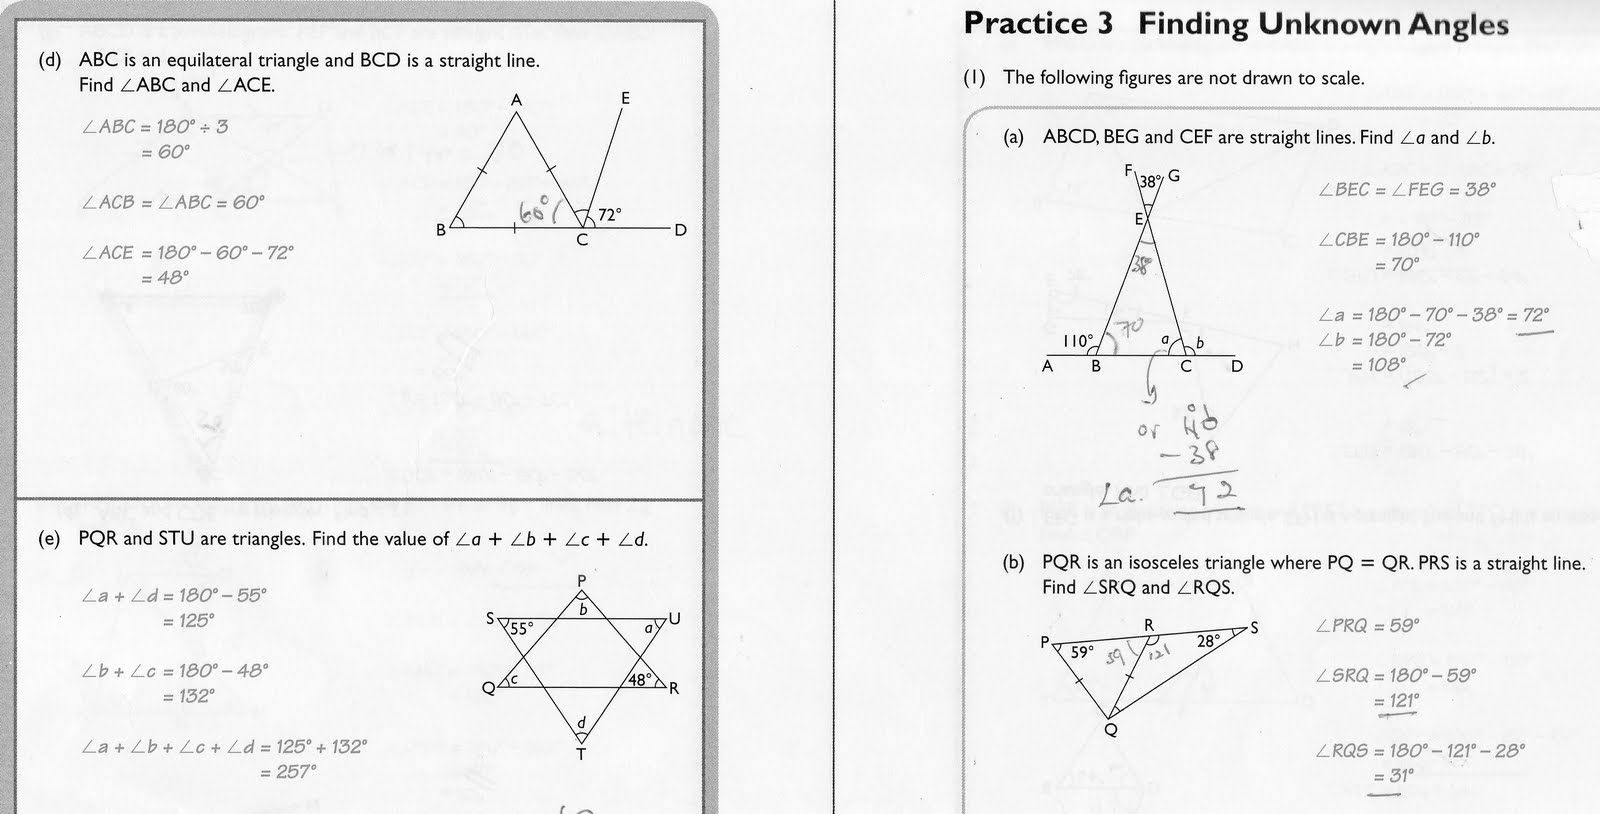 Cckps 6e Finding Unknown Angles Practice 3